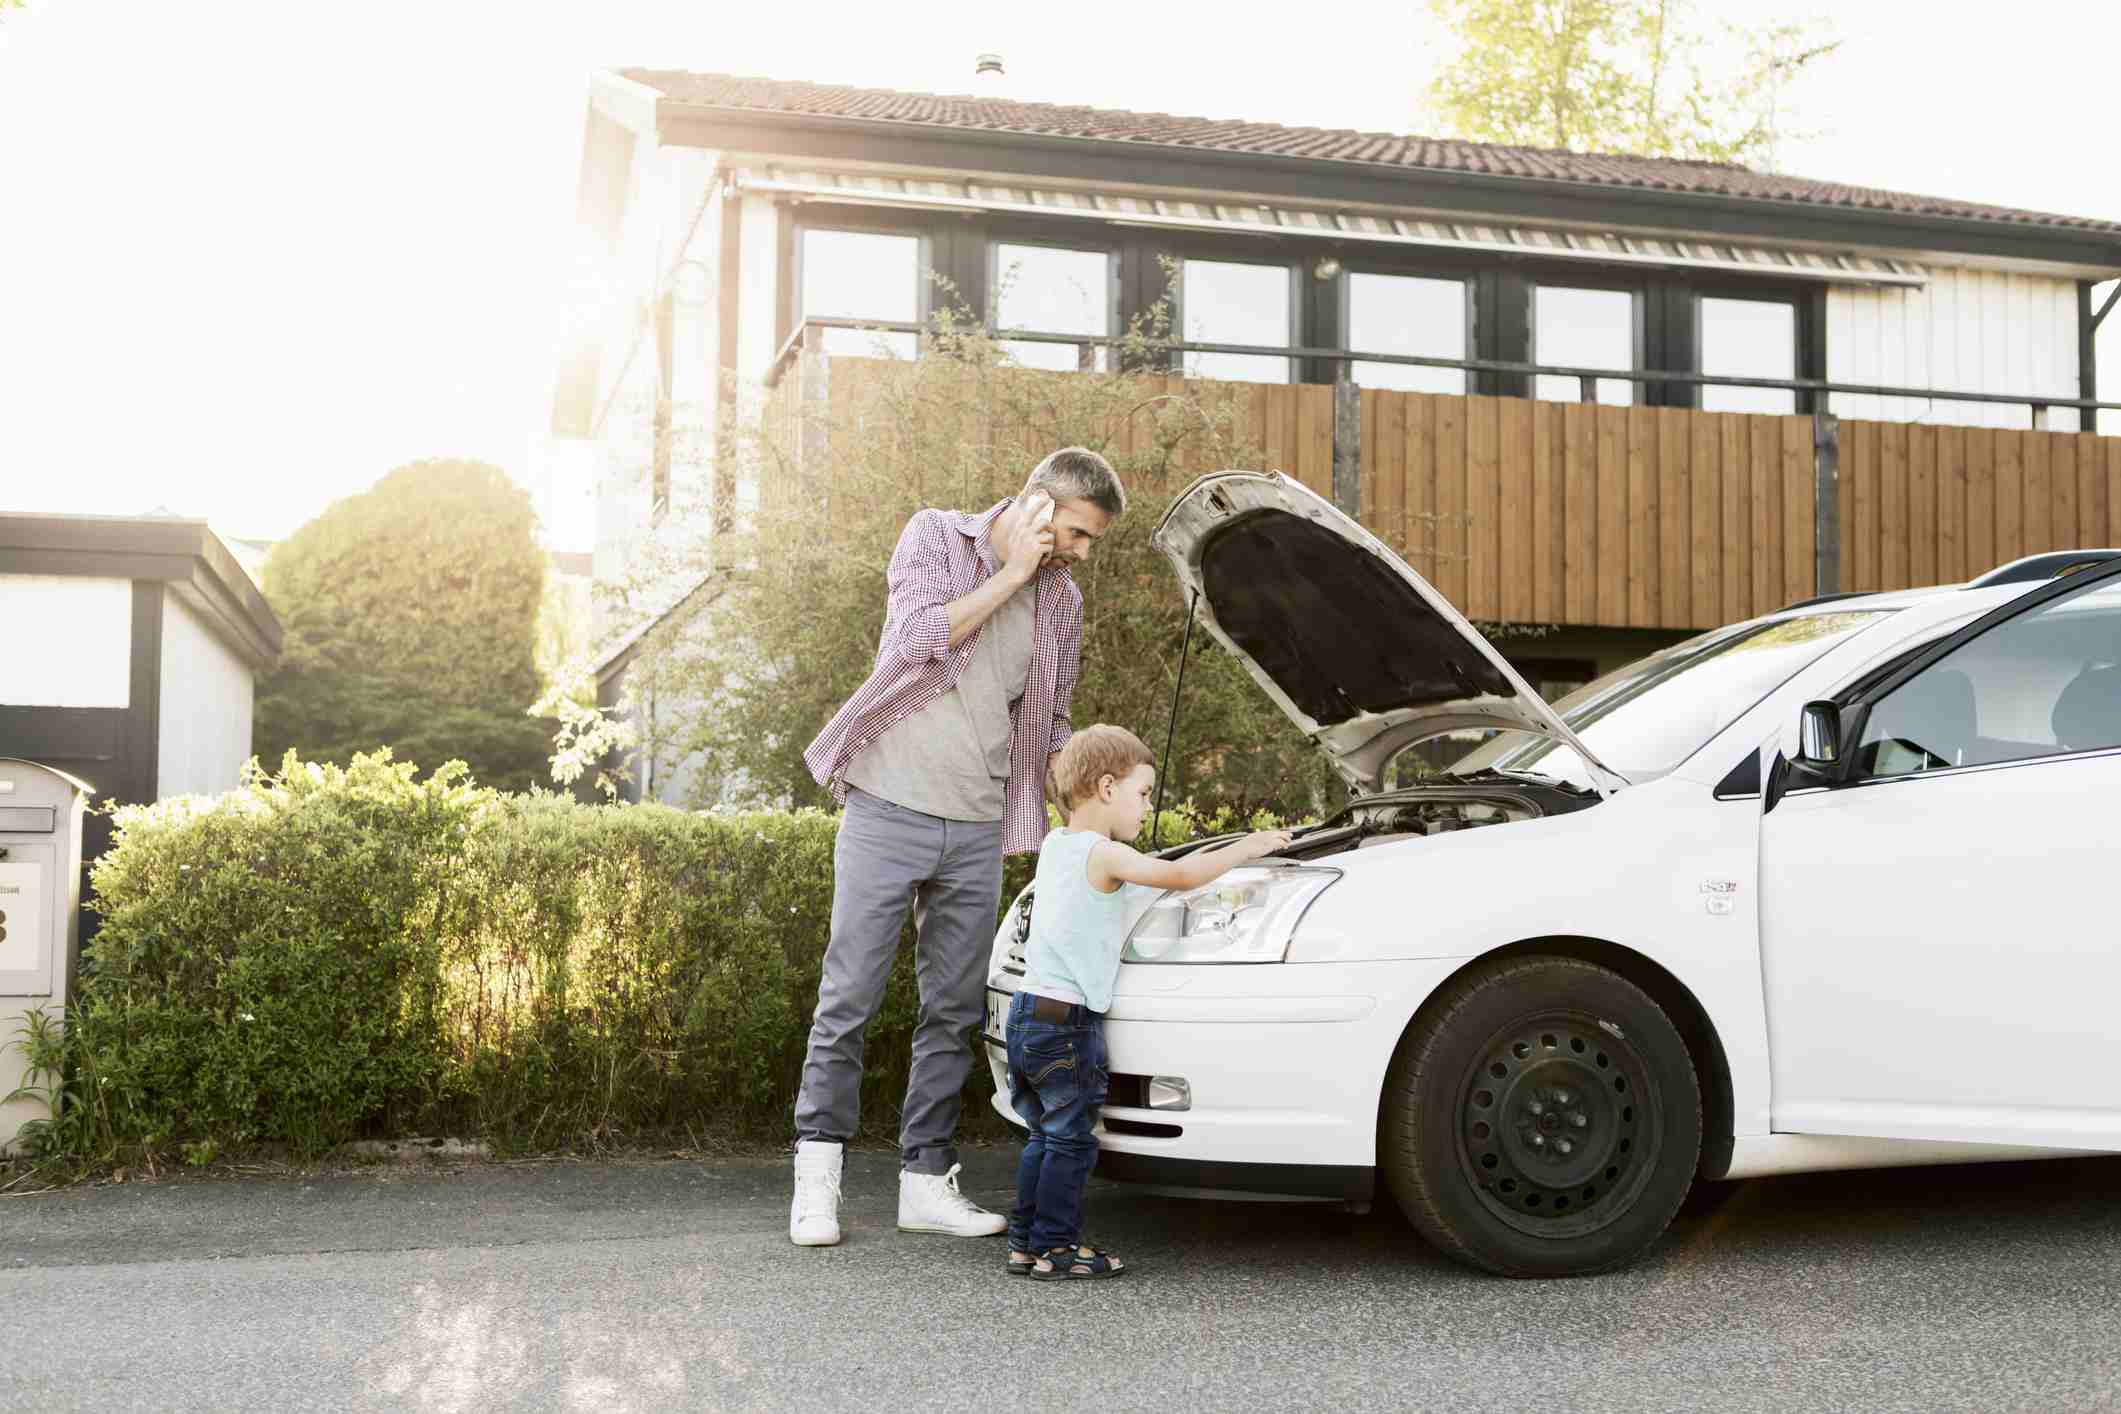 man and young son near a car with an open hood